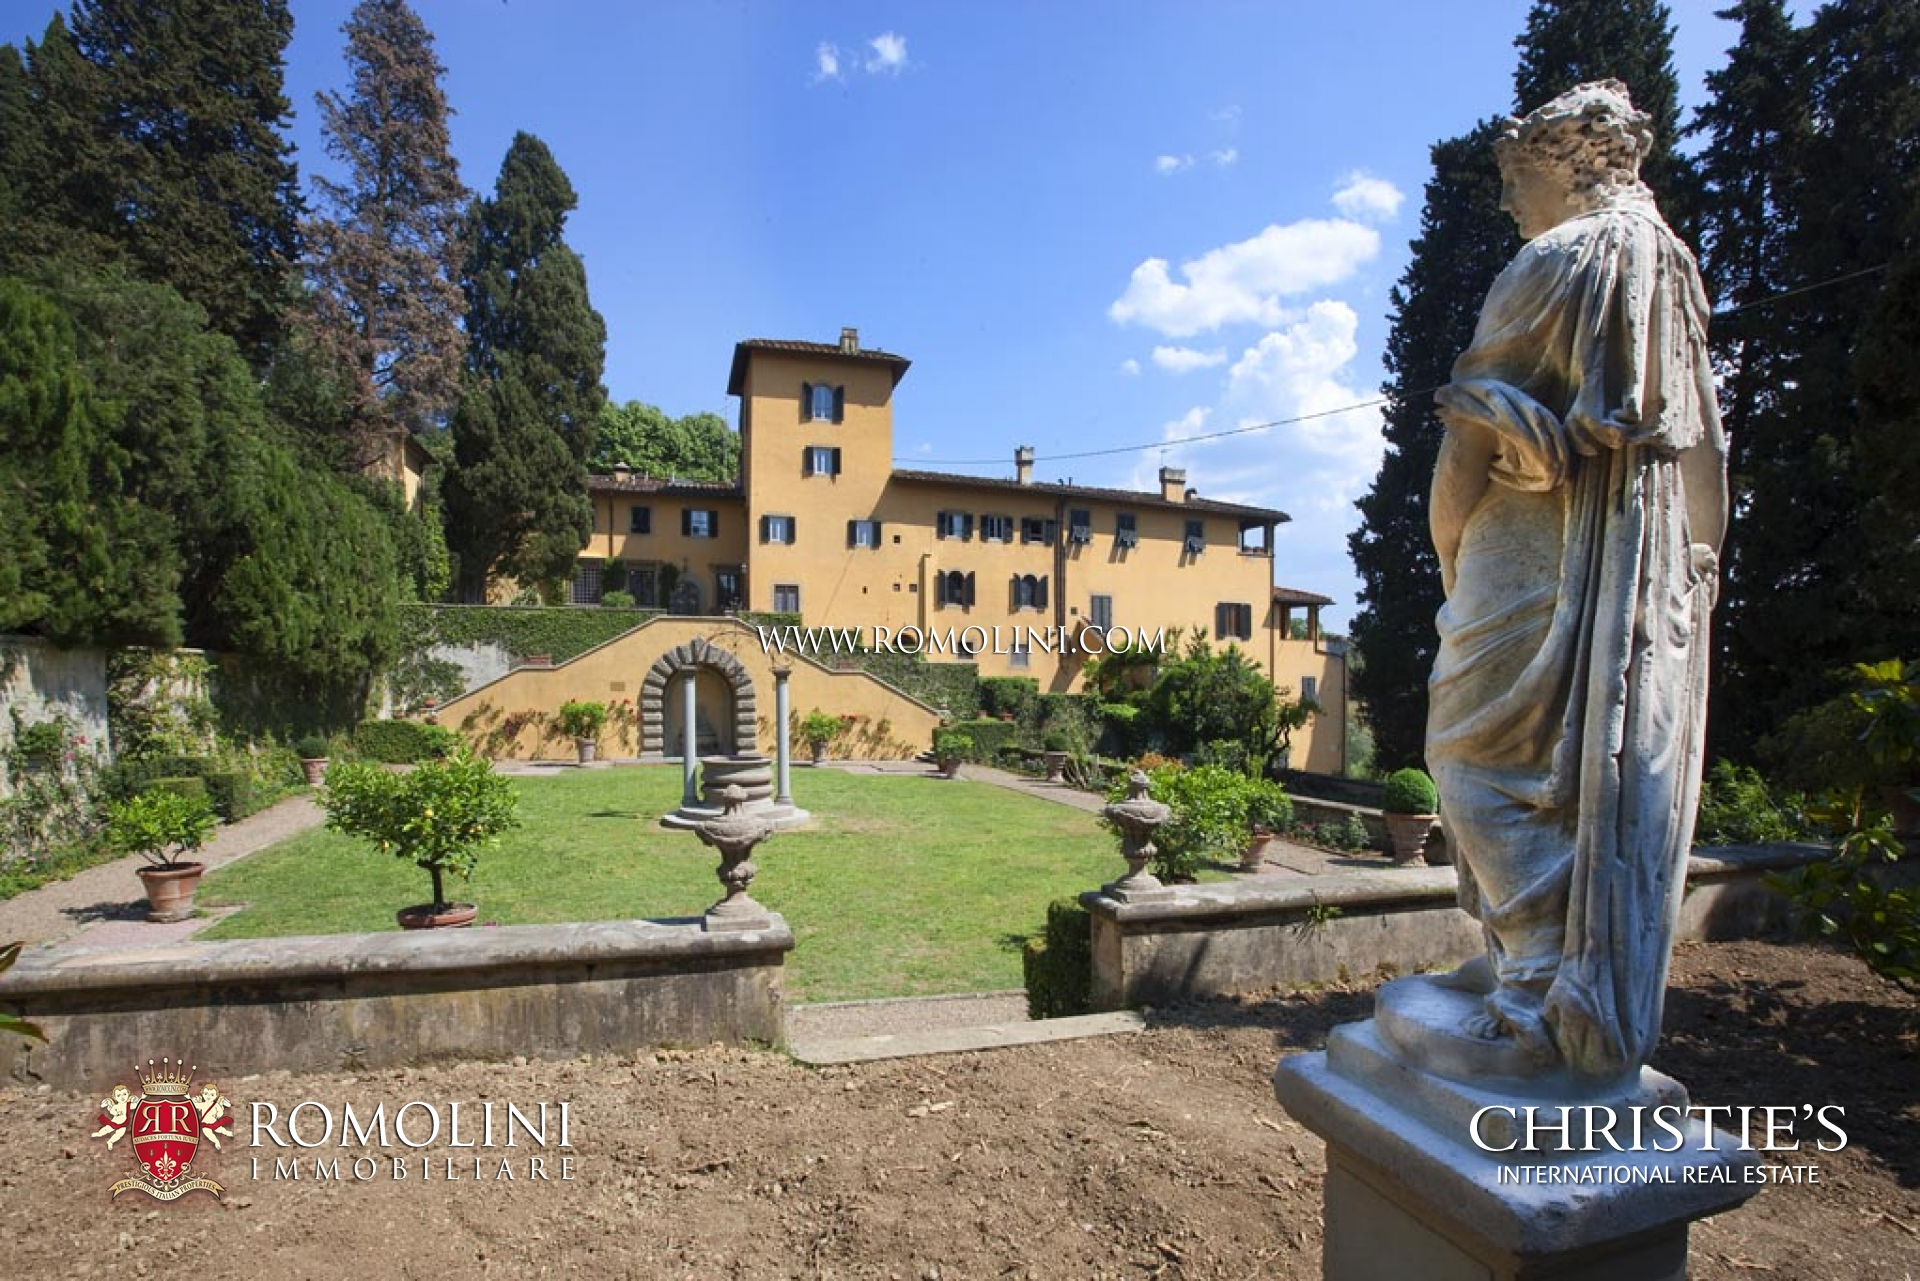 Appartements / Flats pour l Vente à Tuscany - APARTMENT IN HISTORIC VILLA FOR SALE IN FIESOLE, FLORENCE Fiesole, Italie